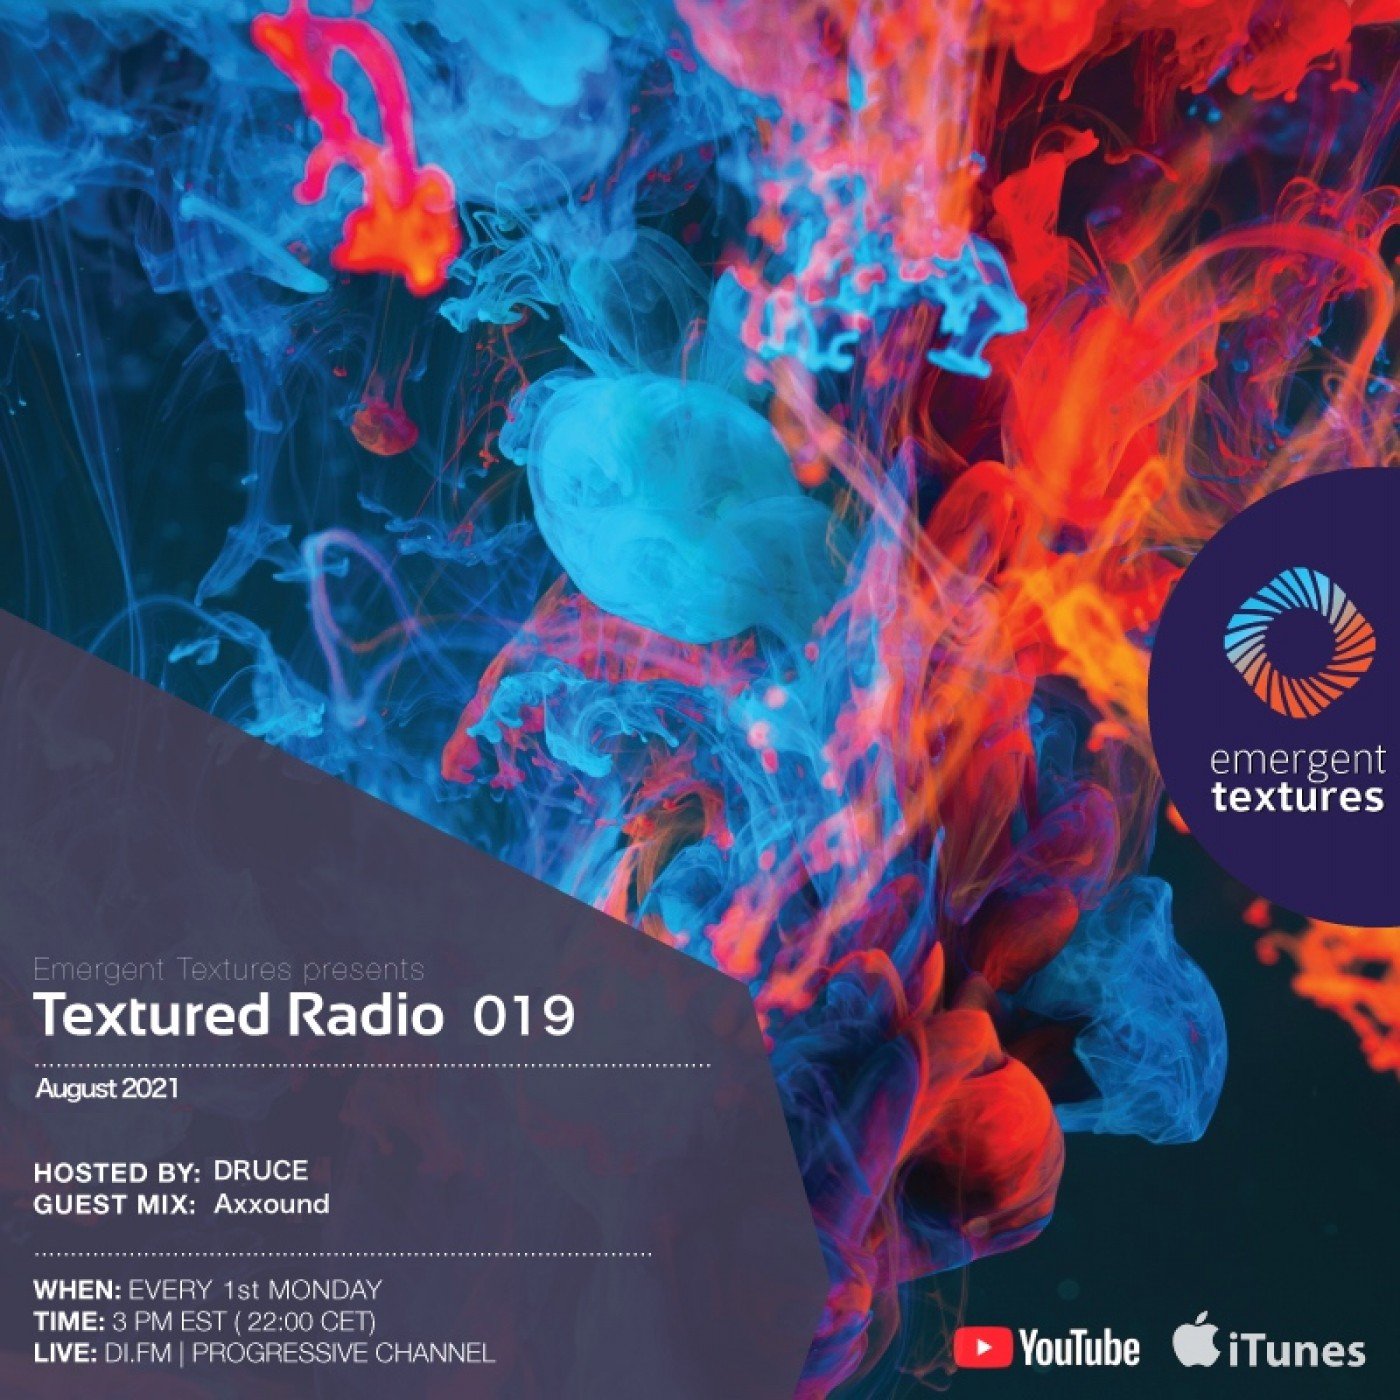 Textured Radio 019 hosted by Druce